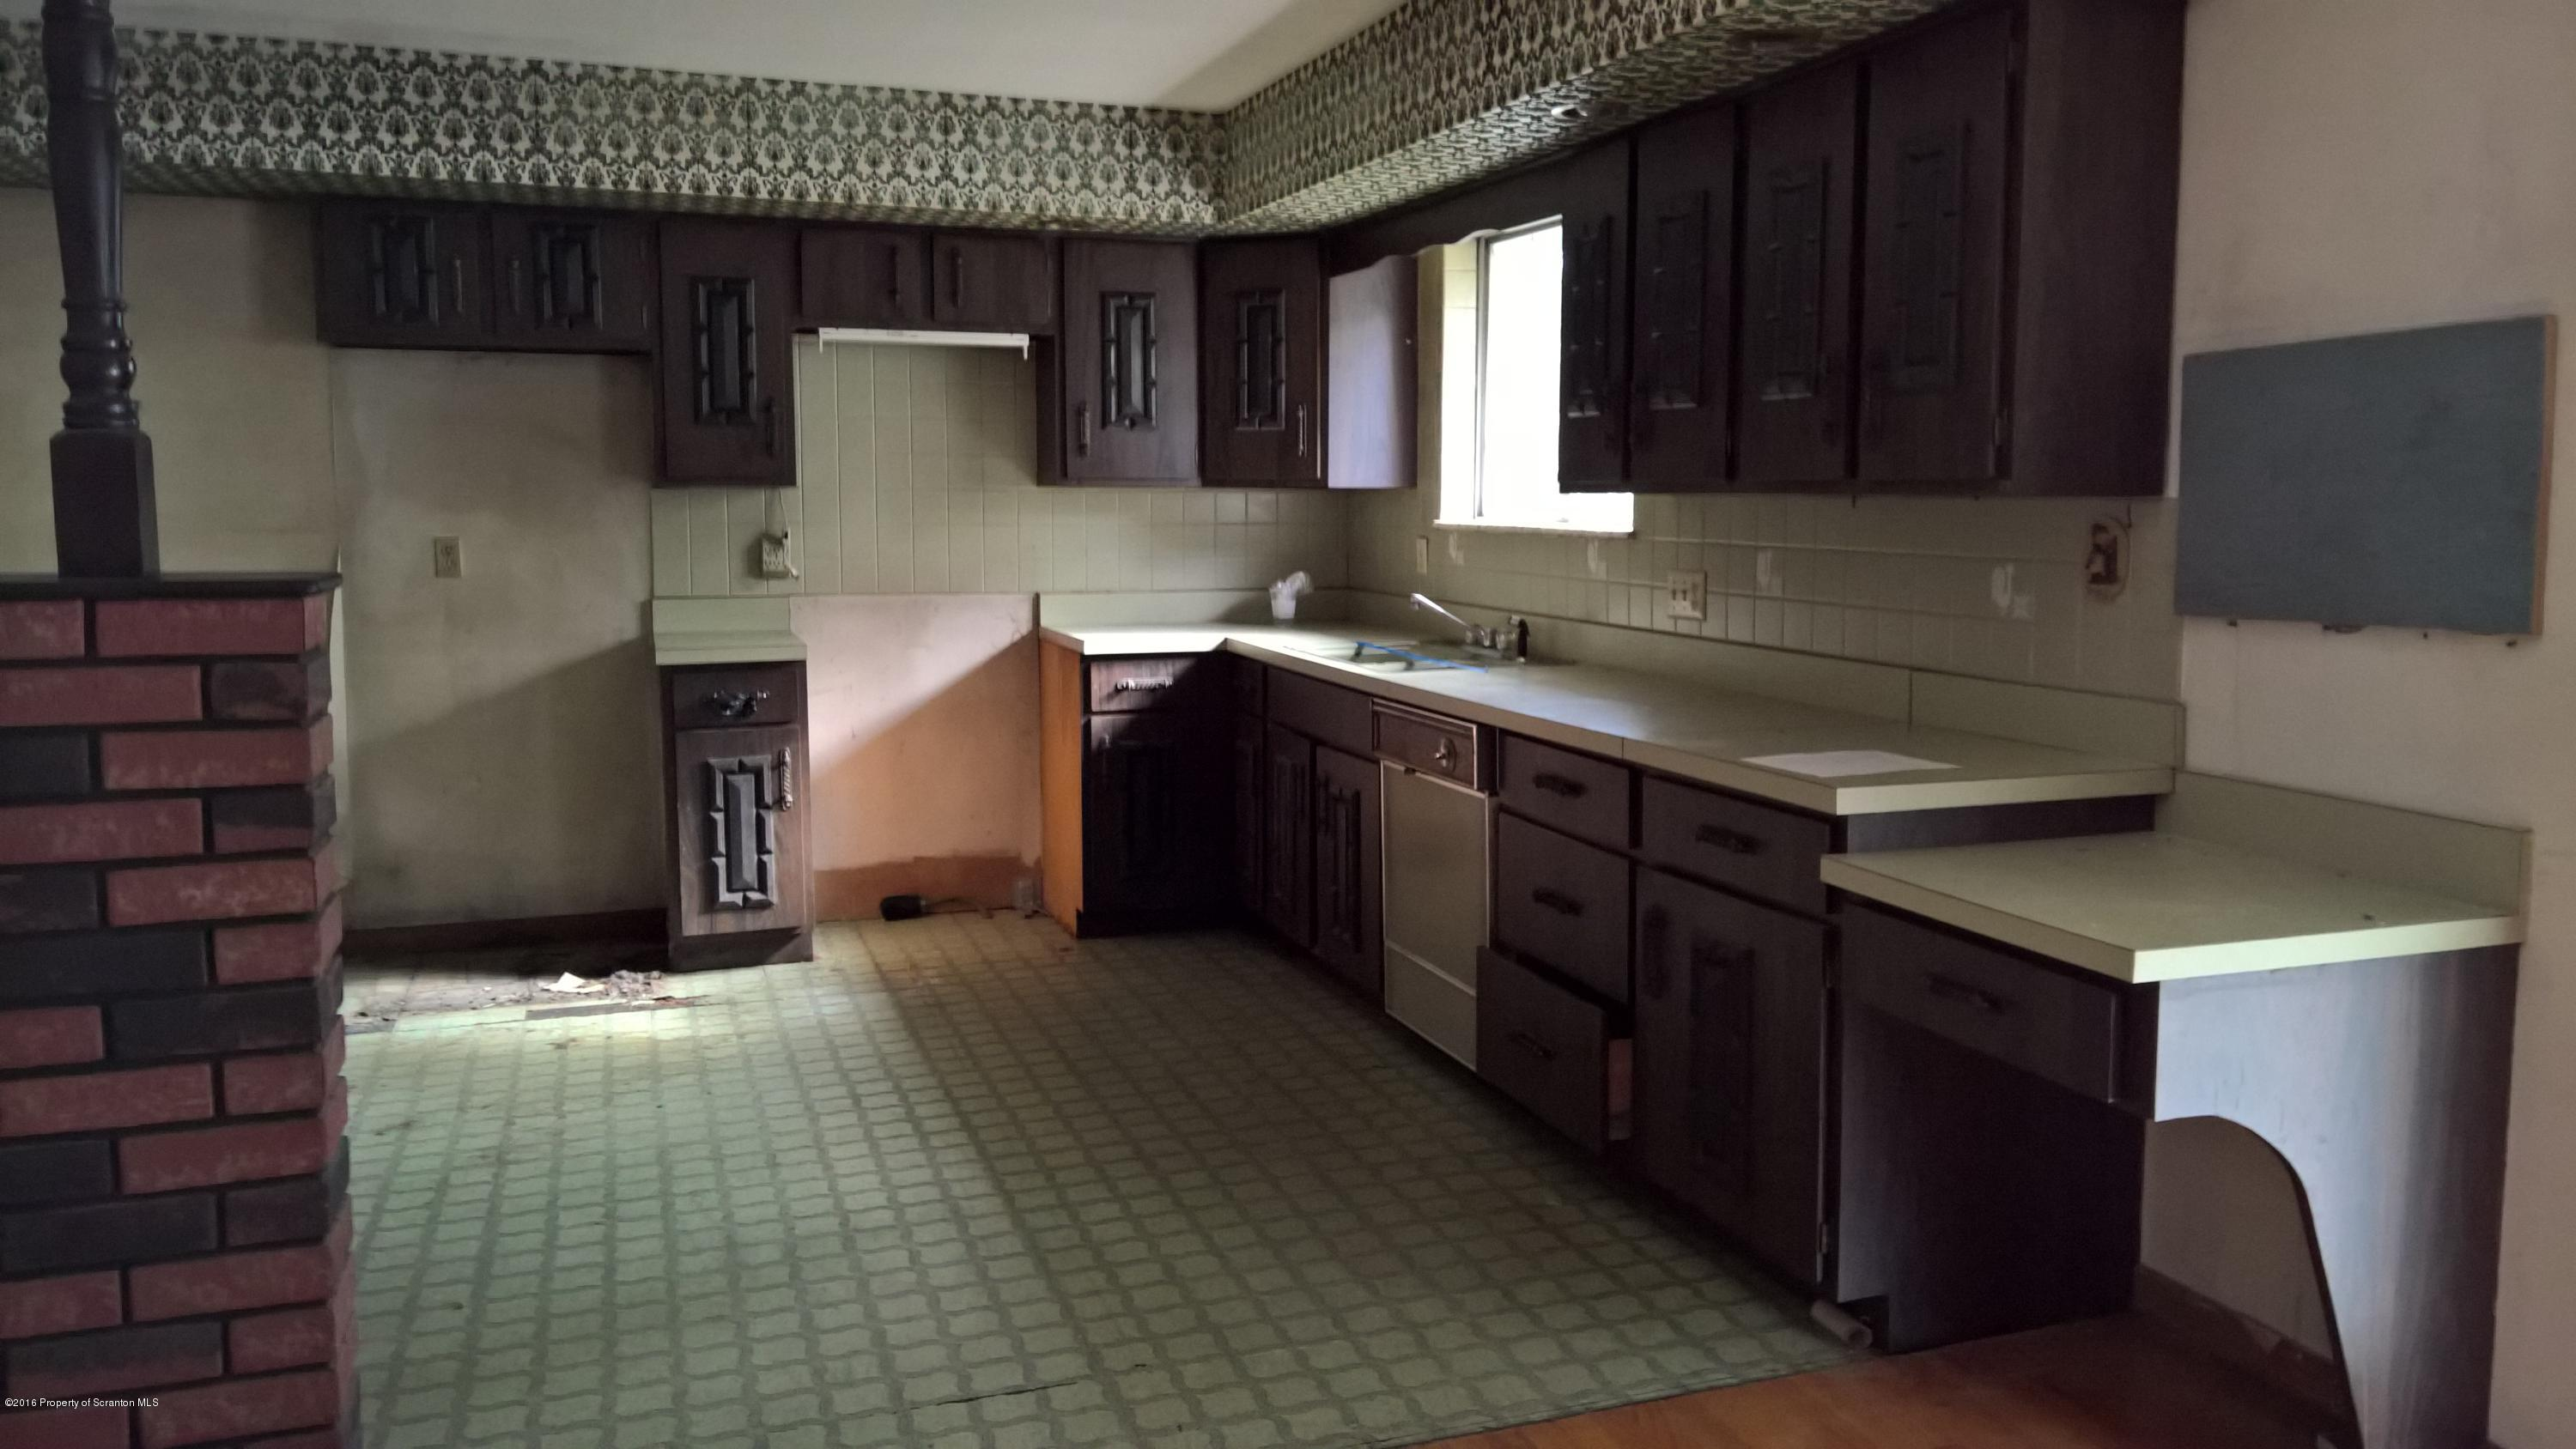 201 Bichler Ln, Taylor, Pennsylvania 18517, 3 Bedrooms Bedrooms, 7 Rooms Rooms,1 BathroomBathrooms,Single Family,For Sale,Bichler,16-4604